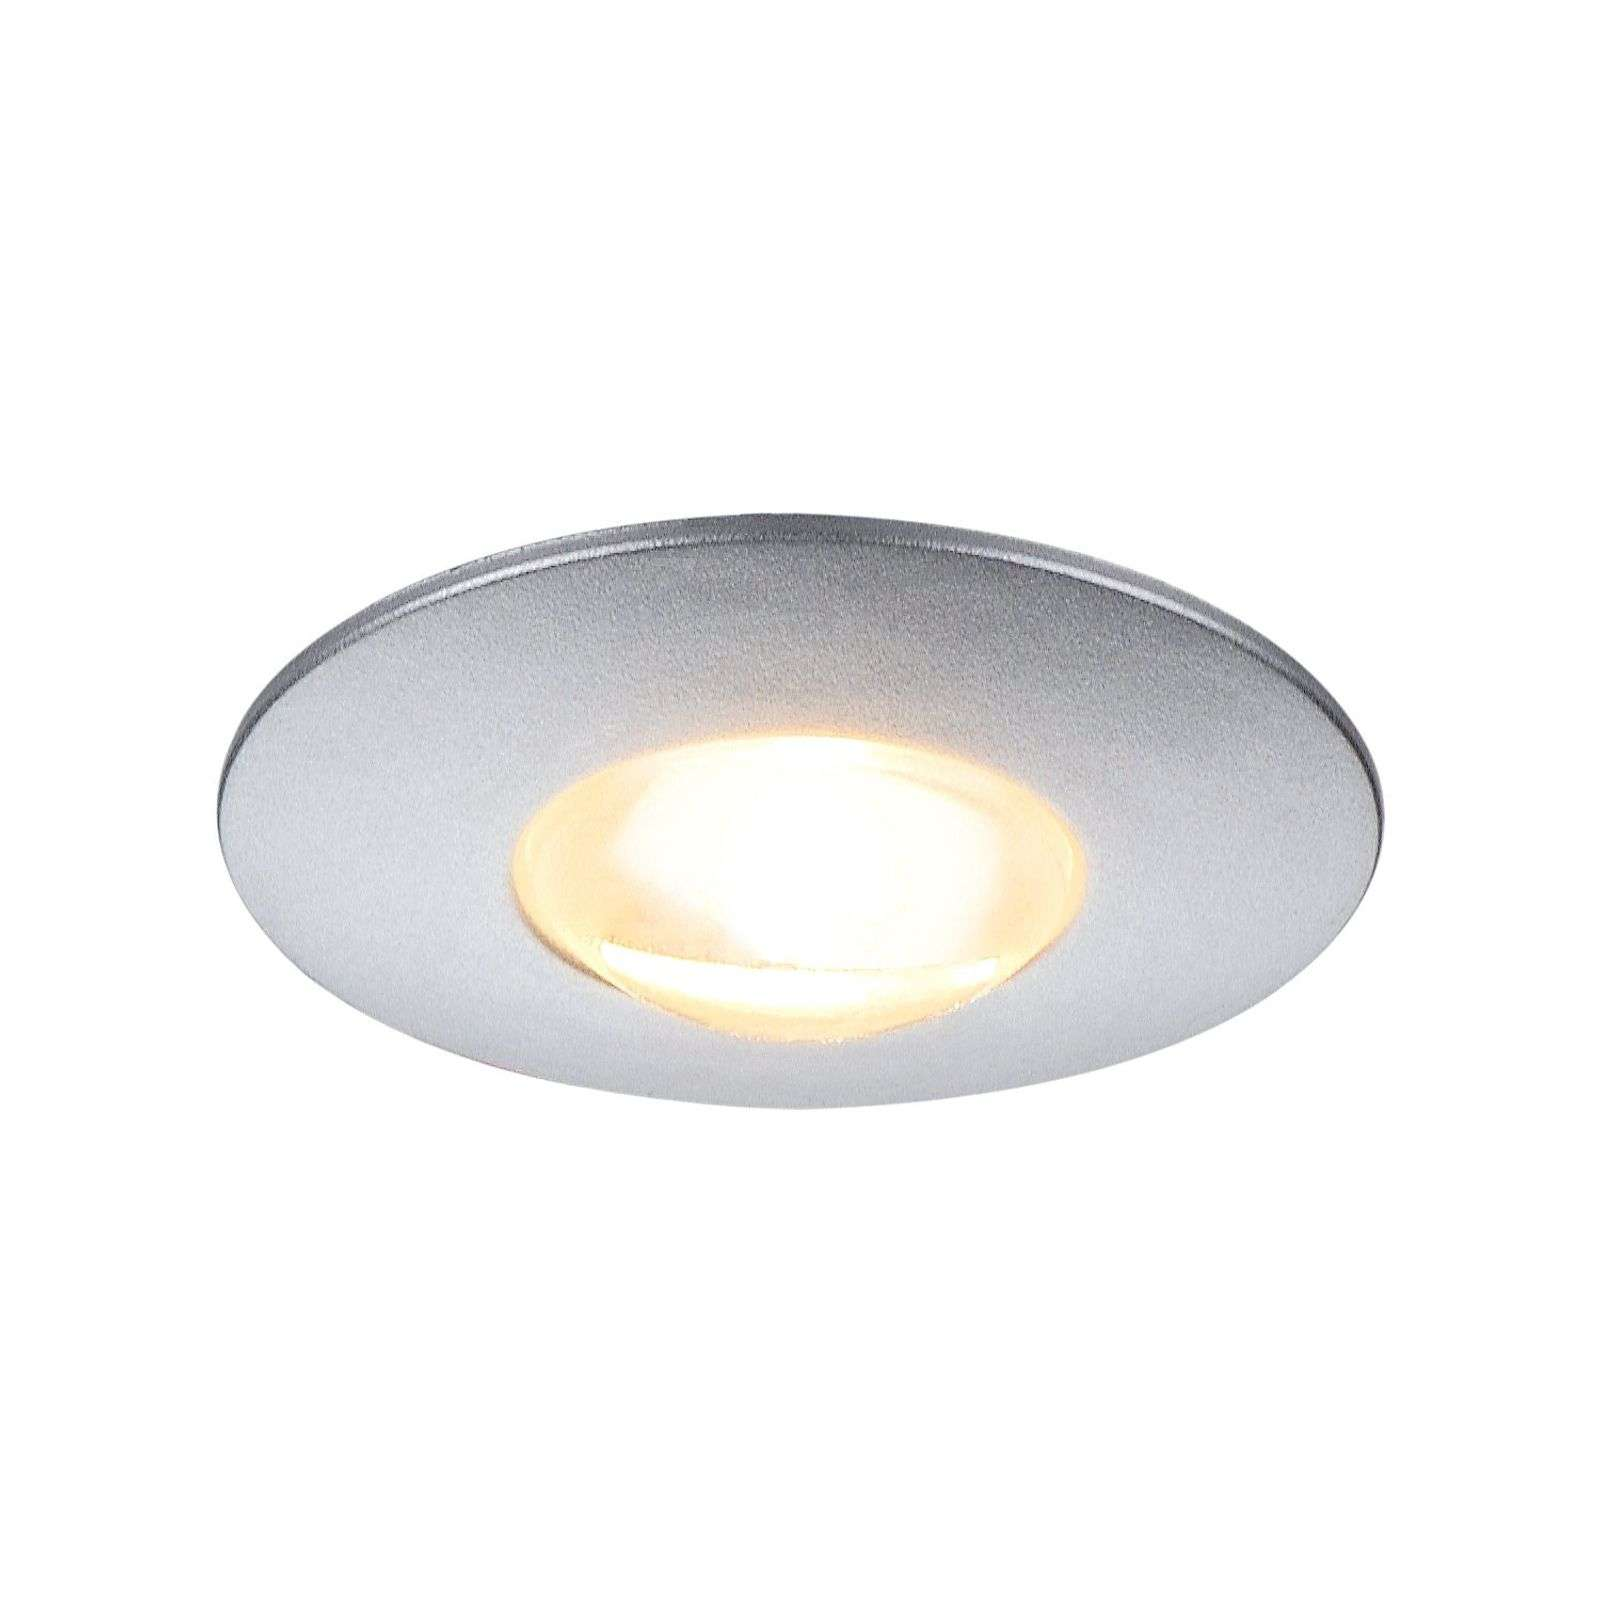 Led-inbouwspot DEKLED, led warm wit